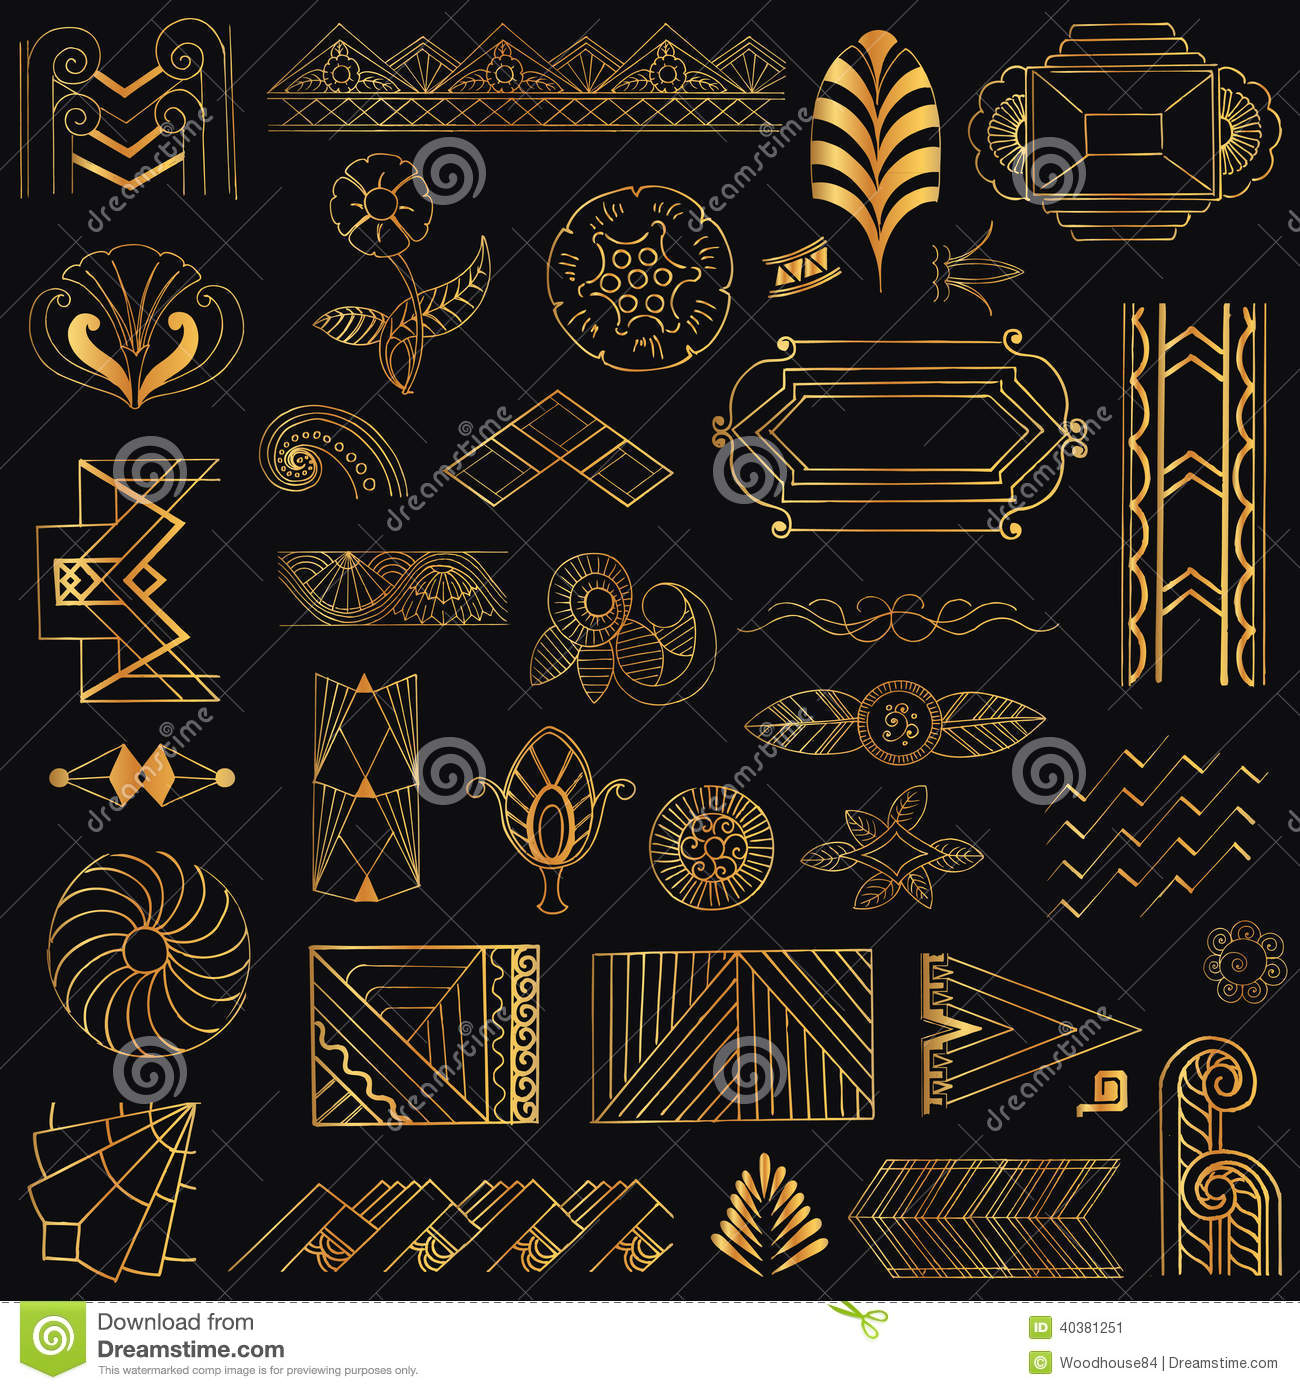 Art deco vintage frames and elements stock vector image for Deco 5 elements